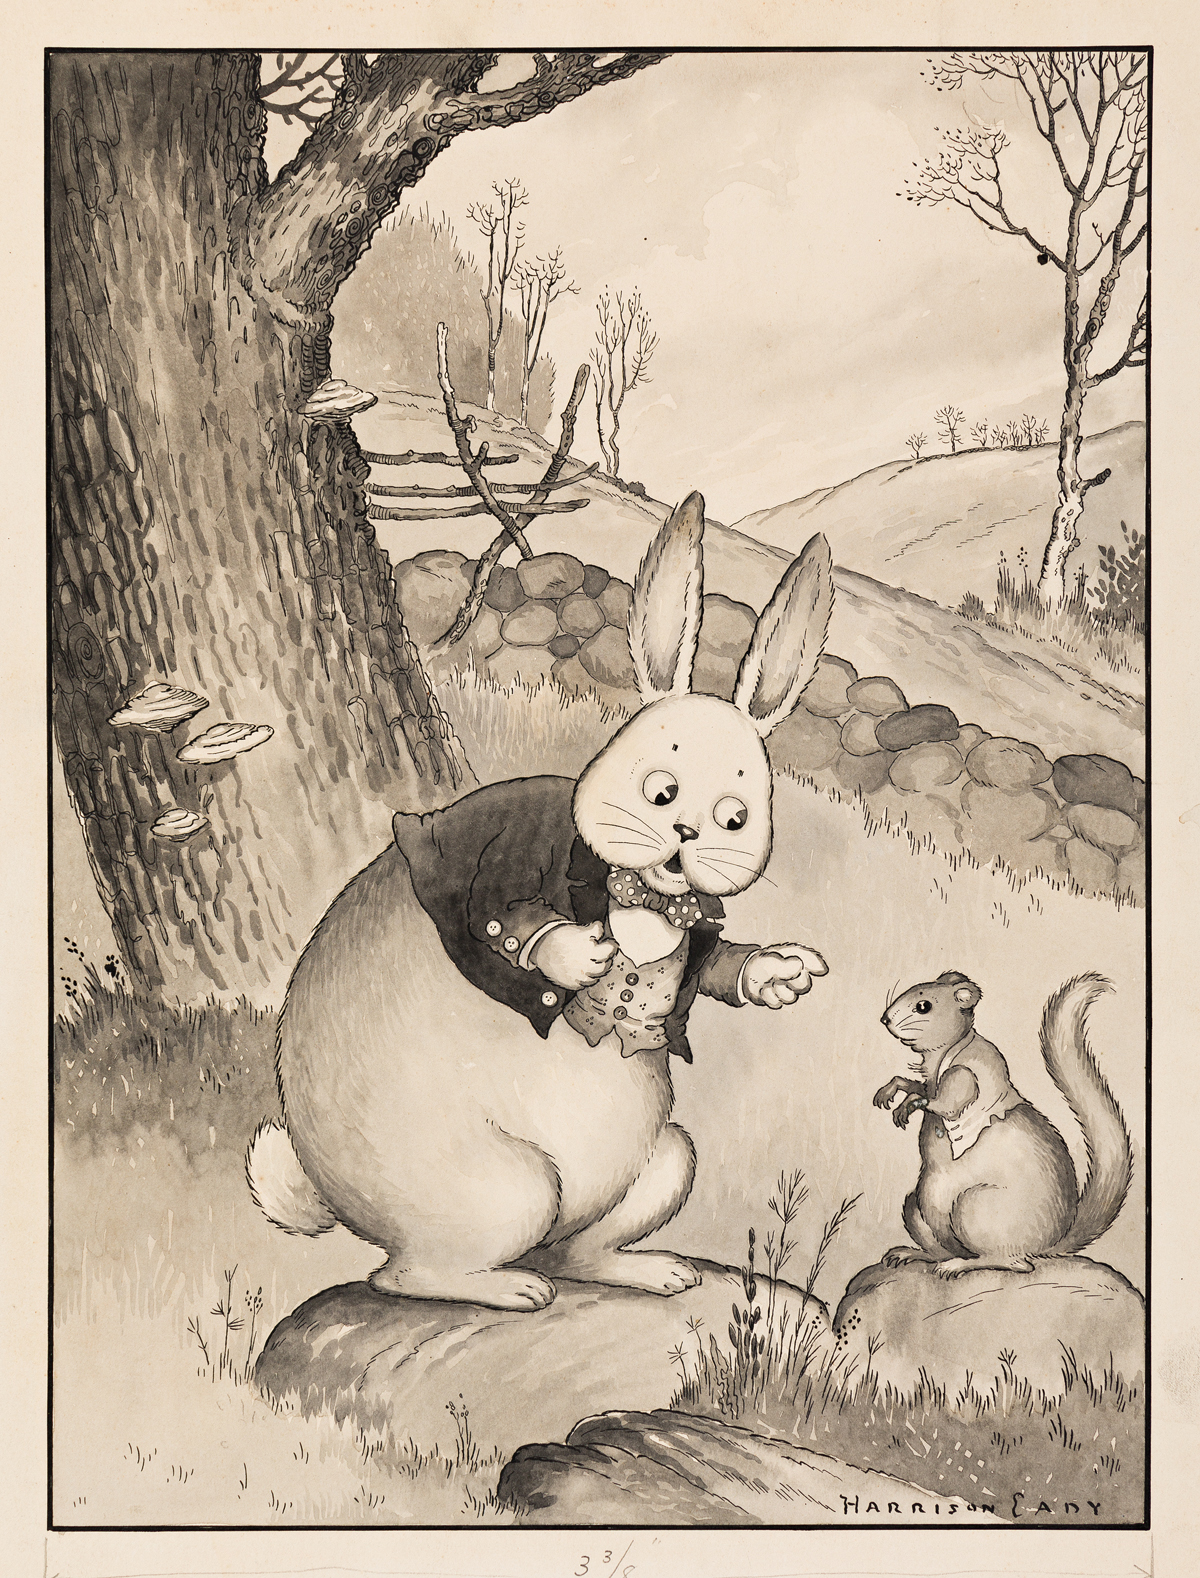 HARRISON CADY (1877-1970) `Have you found a new home yet? asked Peter. [CHILDRENS]